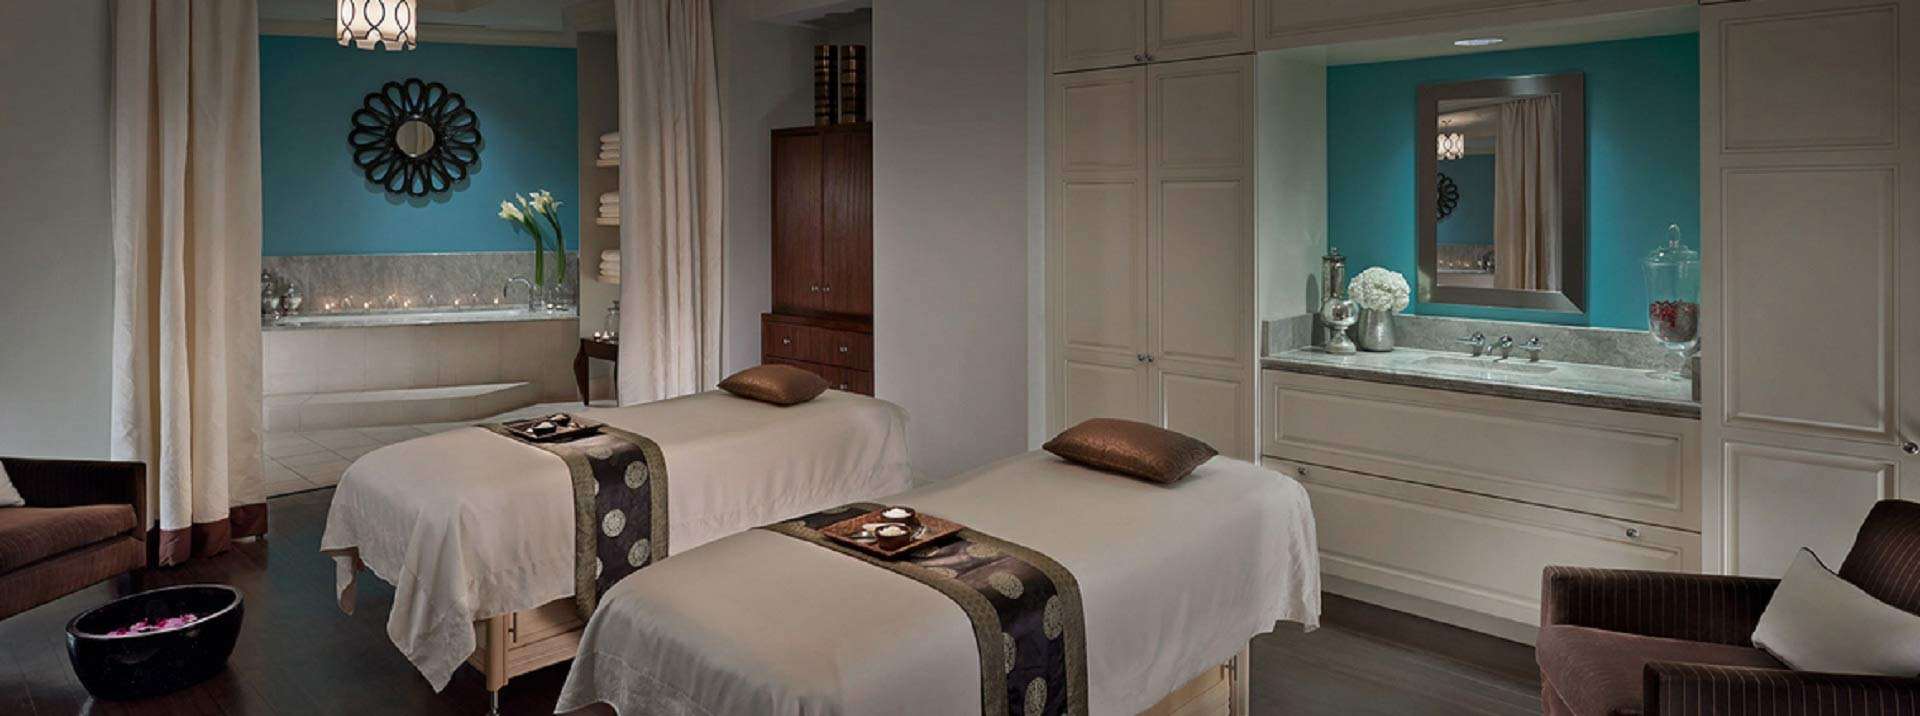 Massage therapists have the option to work in exciting and exotic locations